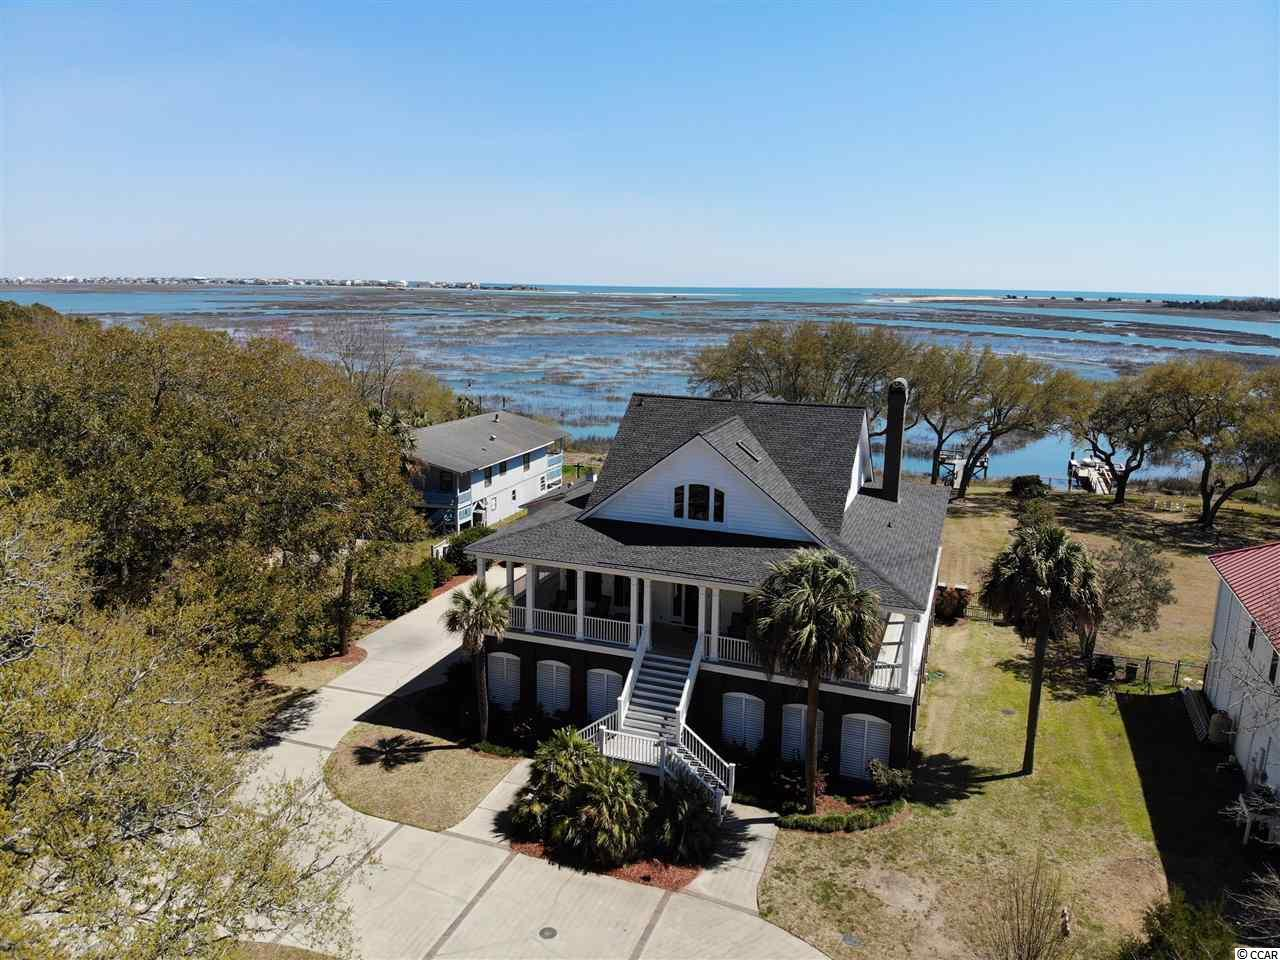 Wow what a rare opportunity to own approximately one acre of waterfront property in the heart of historic fishing village Murrells Inlet, SC! This extraordinary property has much to offer. Timeless appeal holds true in this plantation style home with guest house. Priceless live oaks invite you in to this fascinating property! A well thought out design offers wall to wall windows and doors that are surrounded by southern porches or decks! From the moment you enter your eyes are drawn to the unrivaled breathtaking views of the inlet, channel and ocean! Beautiful hardwood flooring leads the way to the light filled kitchen, dining, and living space. This open concept is perfect for entertaining! The kitchen offers white cabinets, granite counters, Sub-Zero refrigerator, double ovens, wine cooler, ice maker and cook top. The living area has an amazing brick fireplace made from the brick of the old home that was previously built on the property! The Carolina Room is spacious and flows seamlessly from the living area. Two guest bedrooms have hardwood floors, private baths and plantation shutters. Both have doorways leading to the wrap around porch! The private master retreat is a gracious size and offers a wet bar, wine cooler, walk-in closet, en suite bath and a private balcony with a captivating view! The master bath has double sinks, jetted tub and frameless glass shower! Just across the hall is an addition bonus space with two large closets. There are endless possible uses for this space, such as an office, workout room or TV room. It also could easily be made into an additional bedroom and bath! The elevator accesses all levels. Underneath this amazing home is parking, a heated and cooled enclosed work area, half bath, and tons of enclosed storage area. When you add the gorgeous pool, private dock and a guest house, you have your own piece of paradise! The spacious guest house offers a one bedroom, full bath, eat-in kitchen and a private deck overlooking the pool and inlet! What more could you ask for?